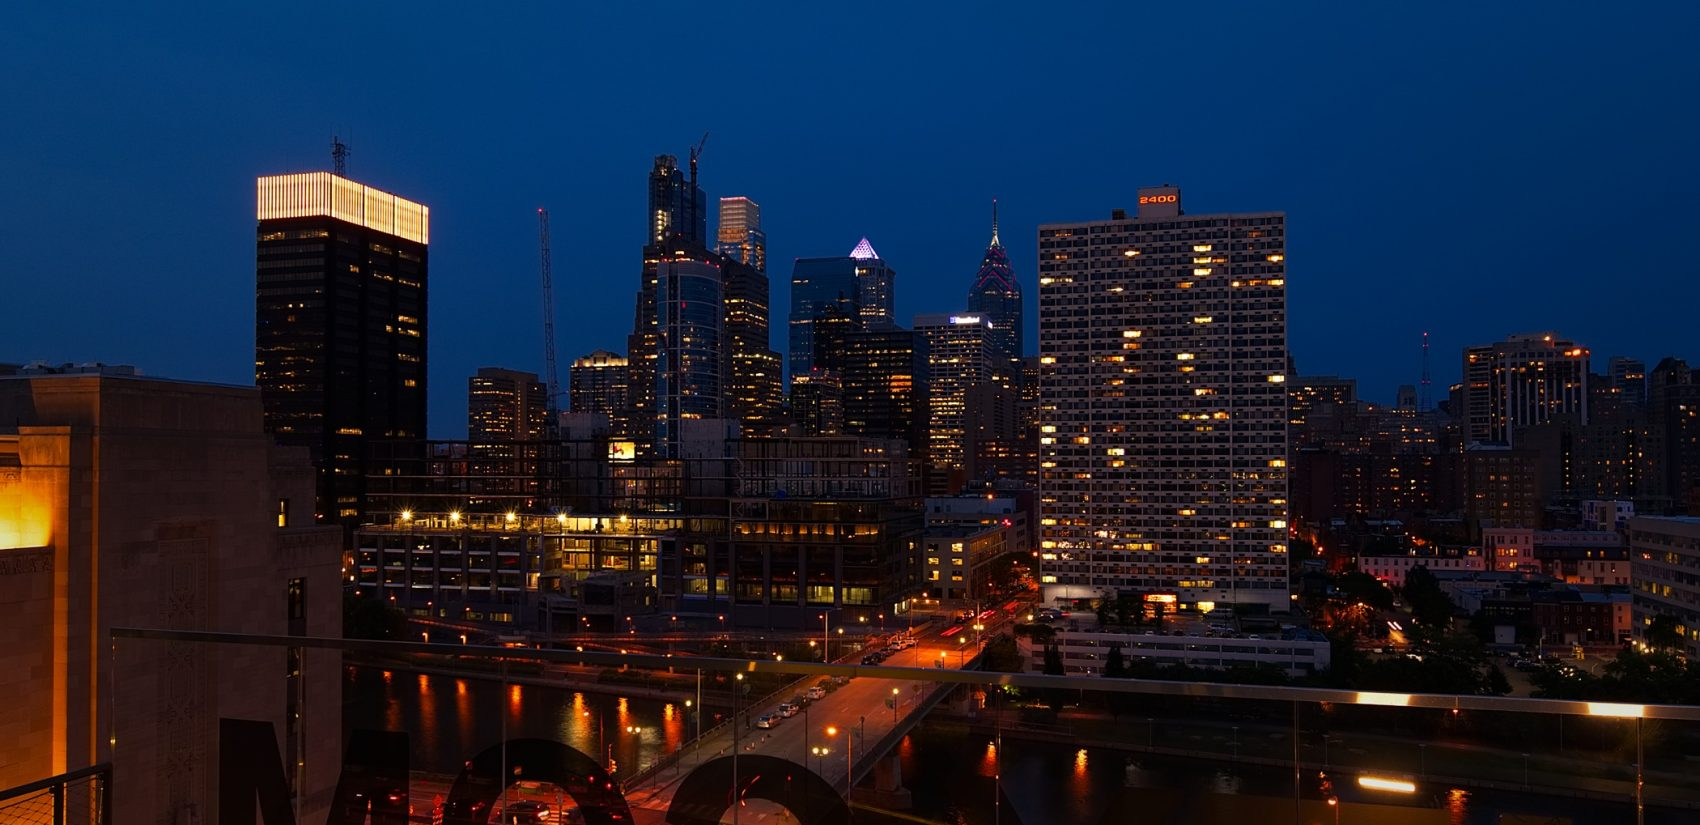 Evening settles over the city's skyline. (Bastiaan Slabbers for WHYY)